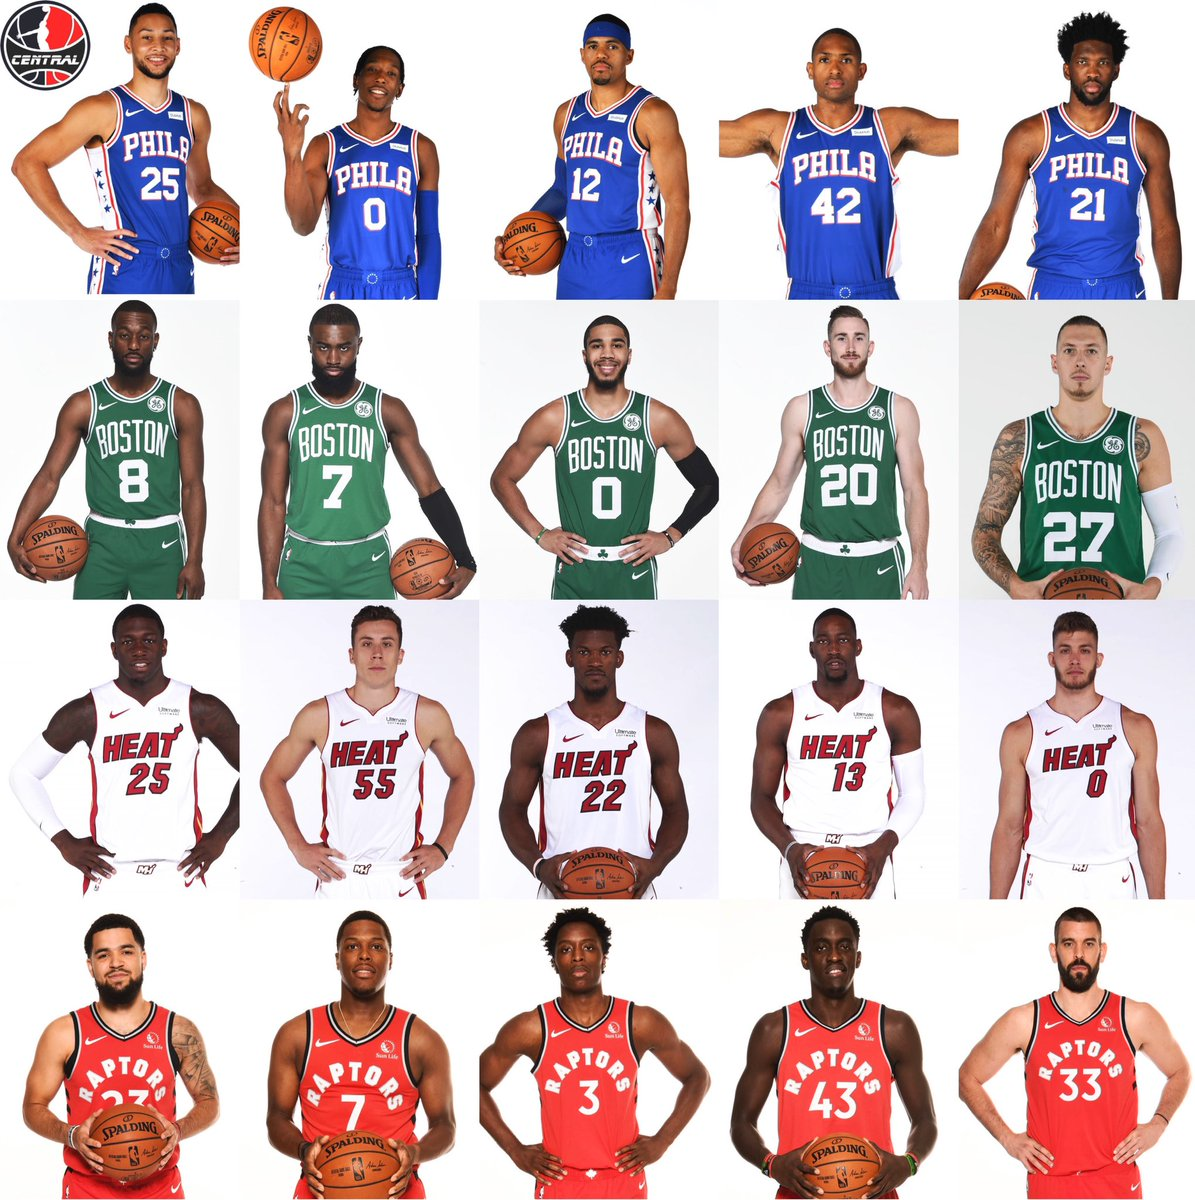 Rank these teams 1-4 https://t.co/OYfs8Et4FT